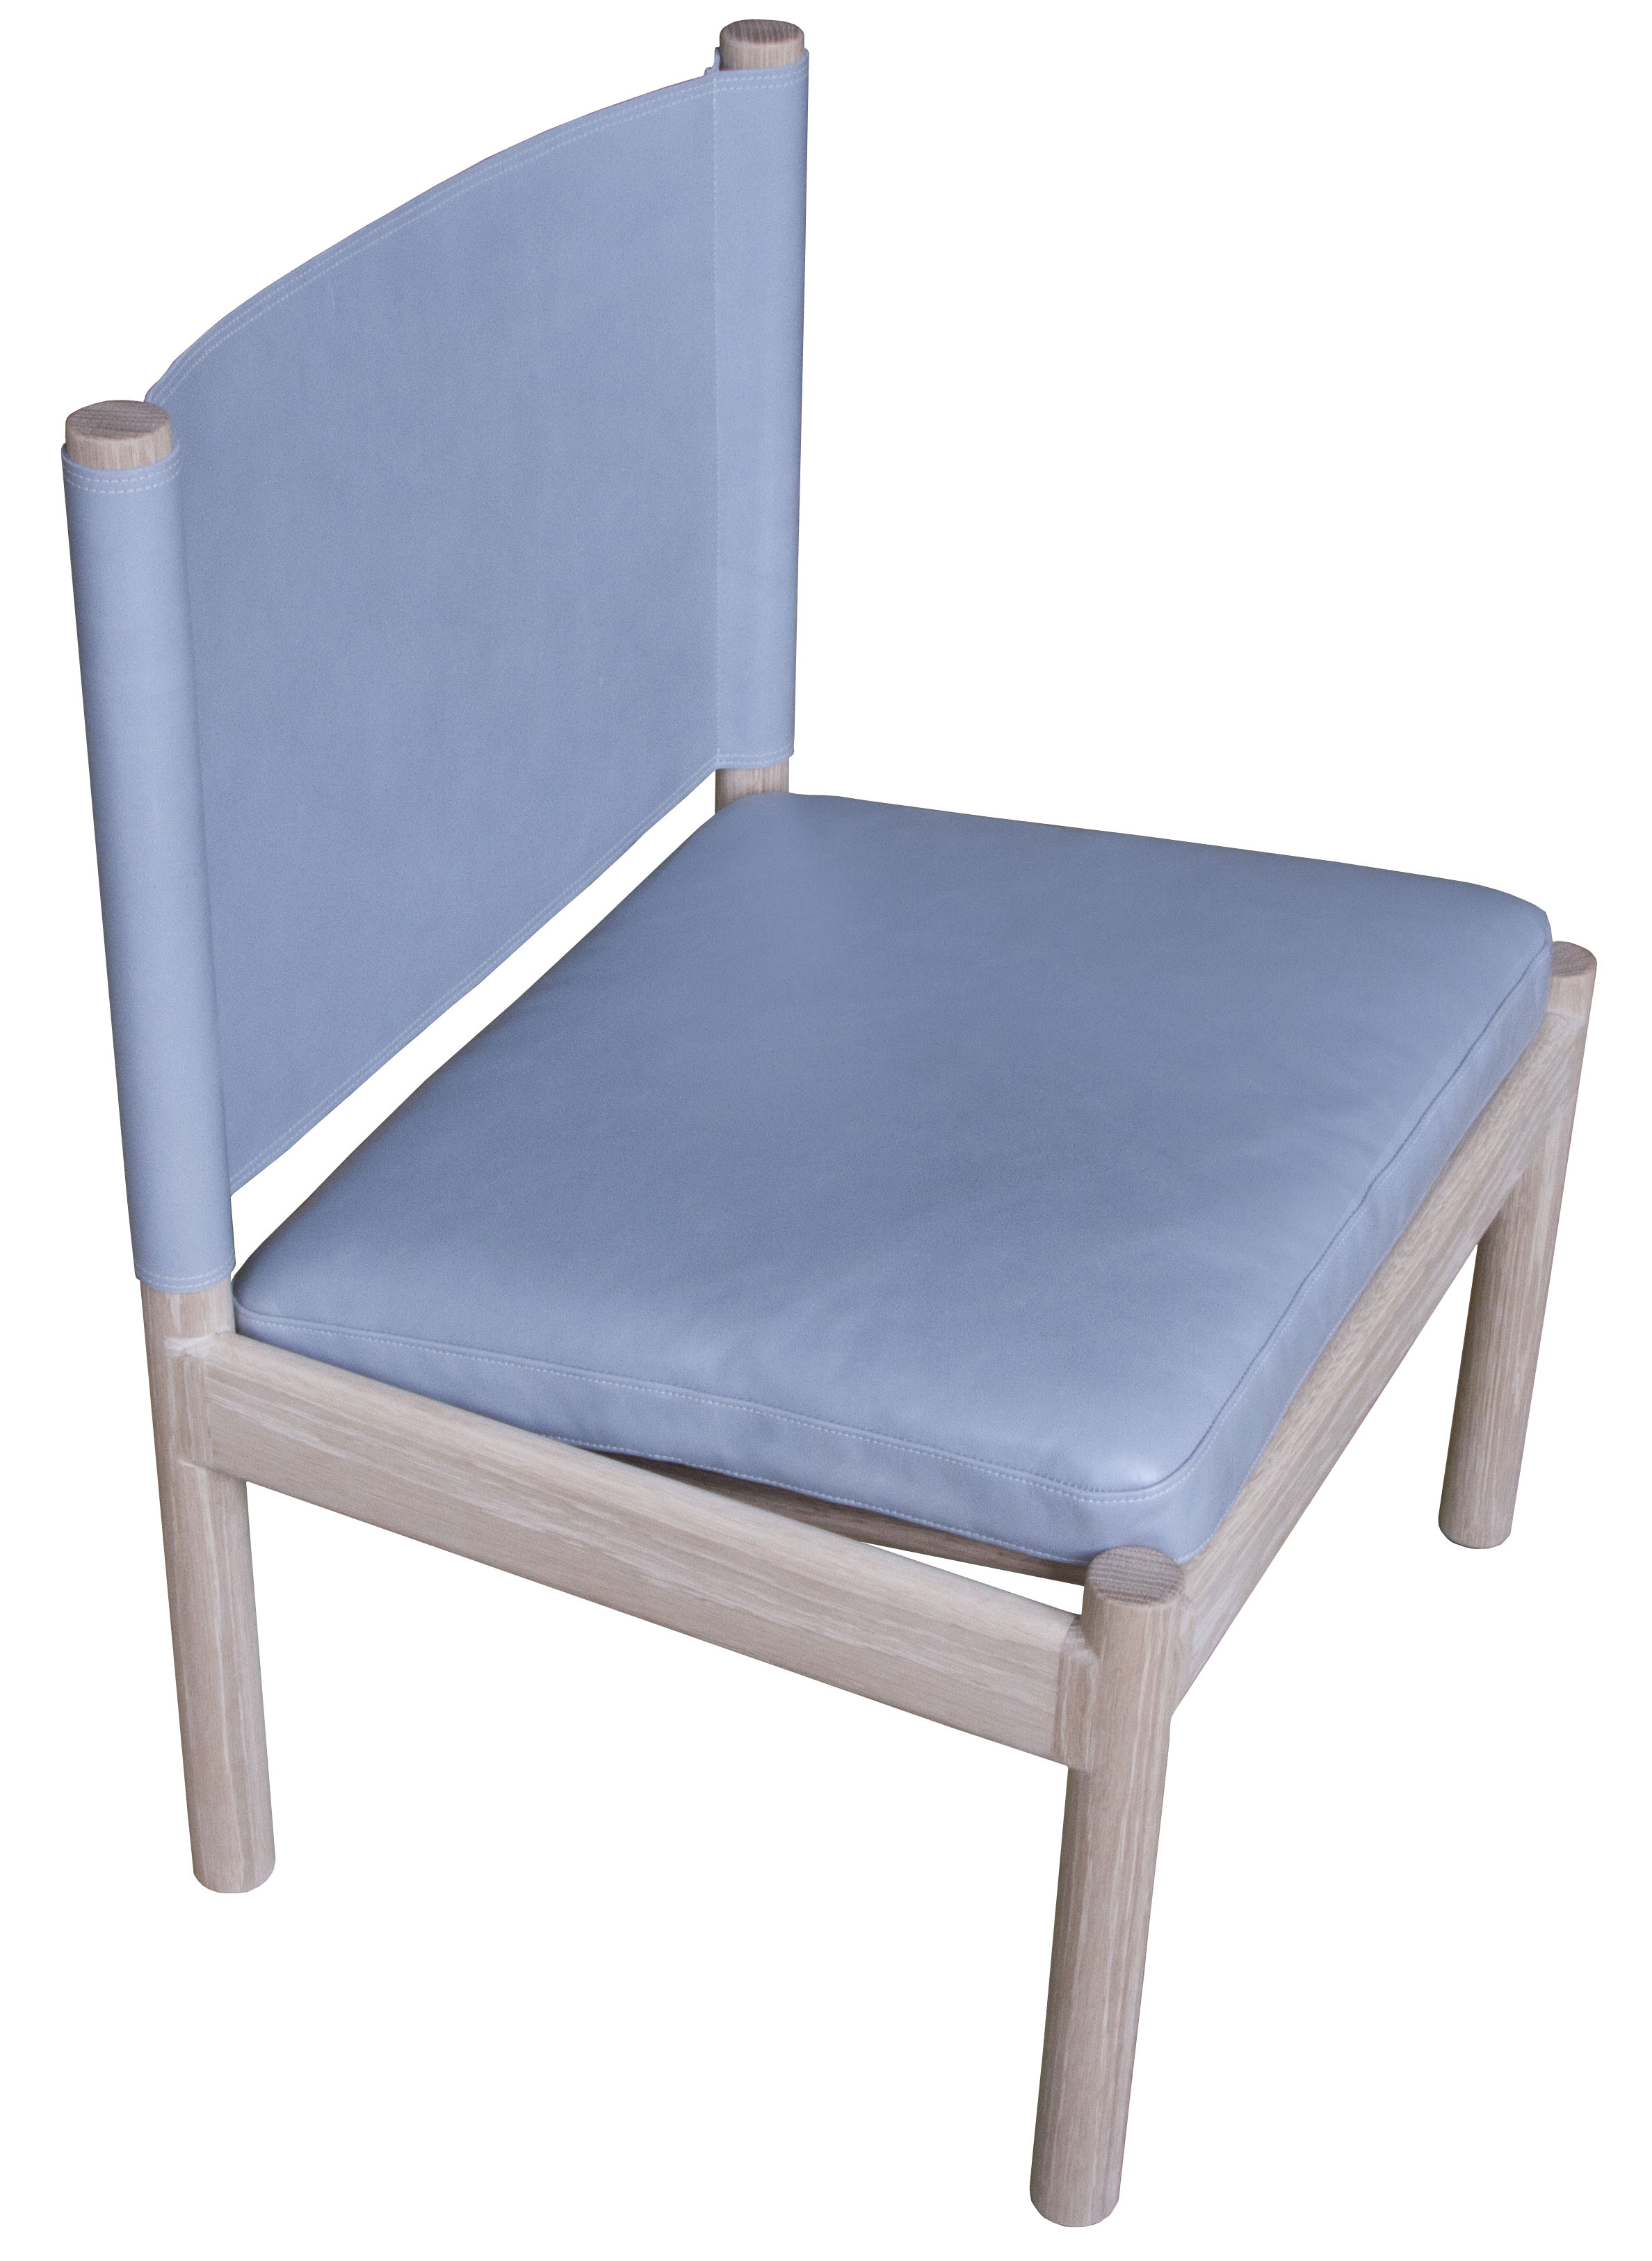 Reed Chair  Natural finished white oak with Moore & Giles Diablo: powder blue